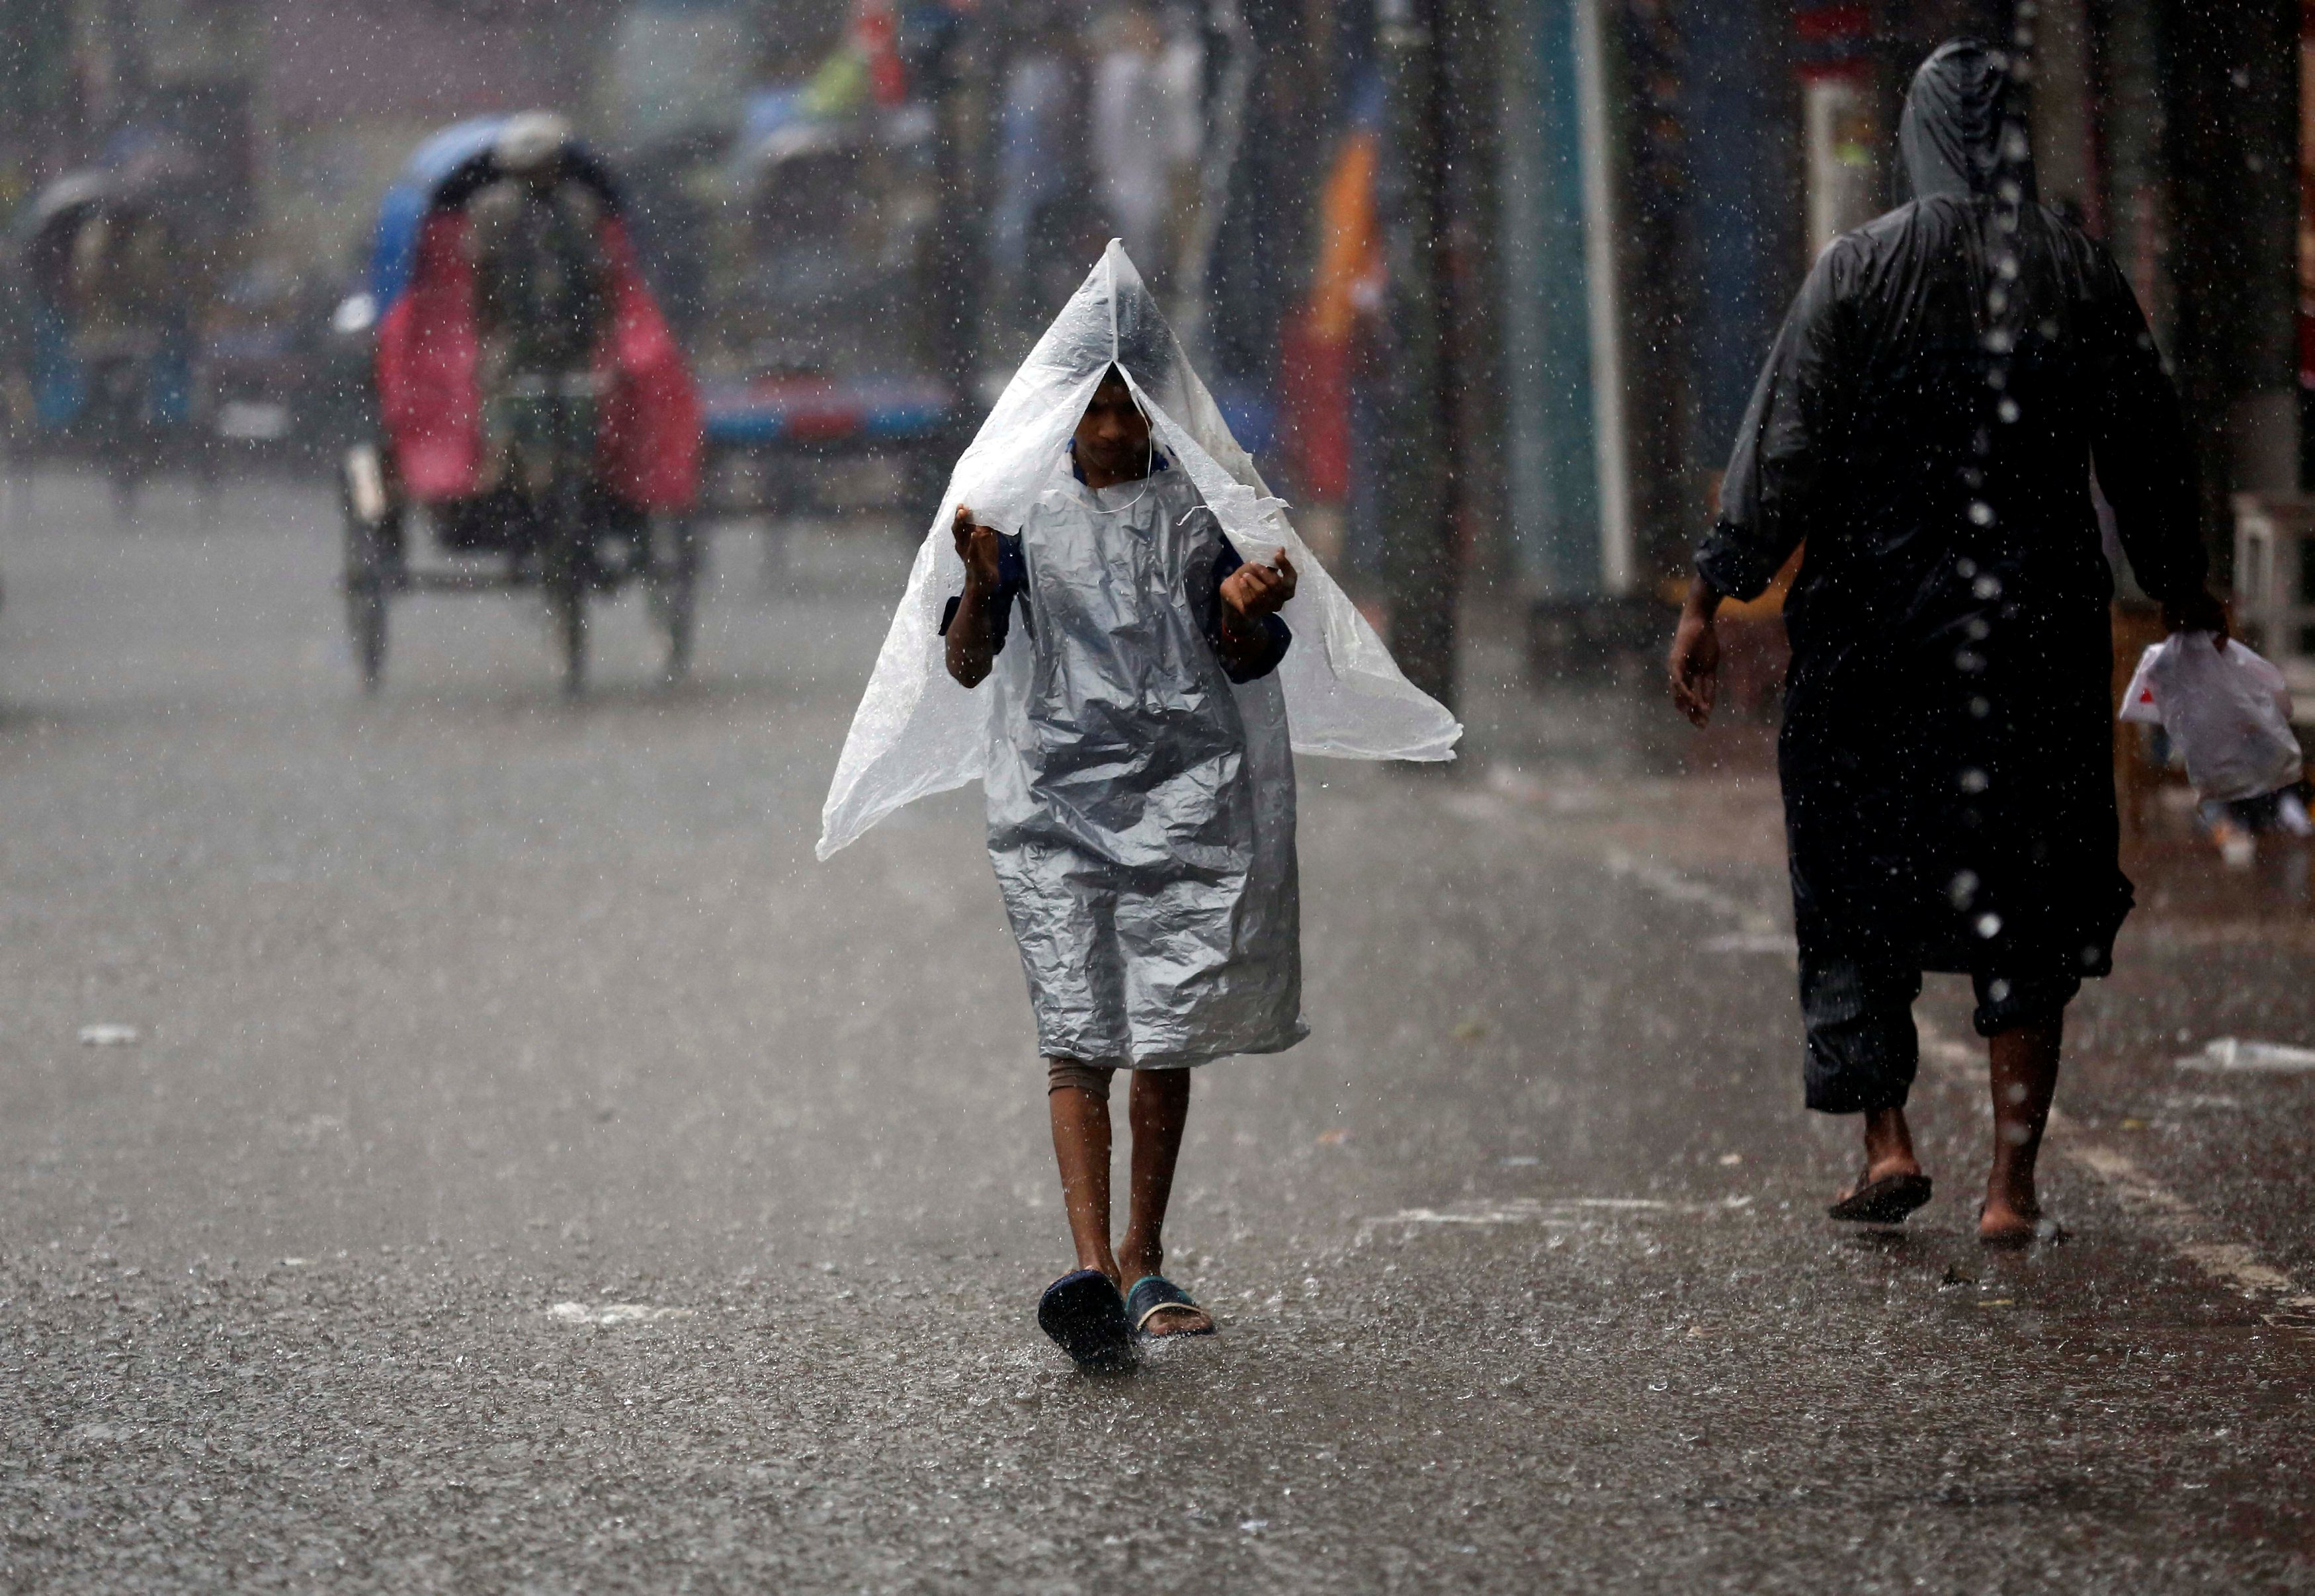 A boy covers his body with polythene sheet while walking on the road during heavy rain in Dhaka, Bangladesh July 26, 2017. REUTERS/Mohammad Ponir Hossain